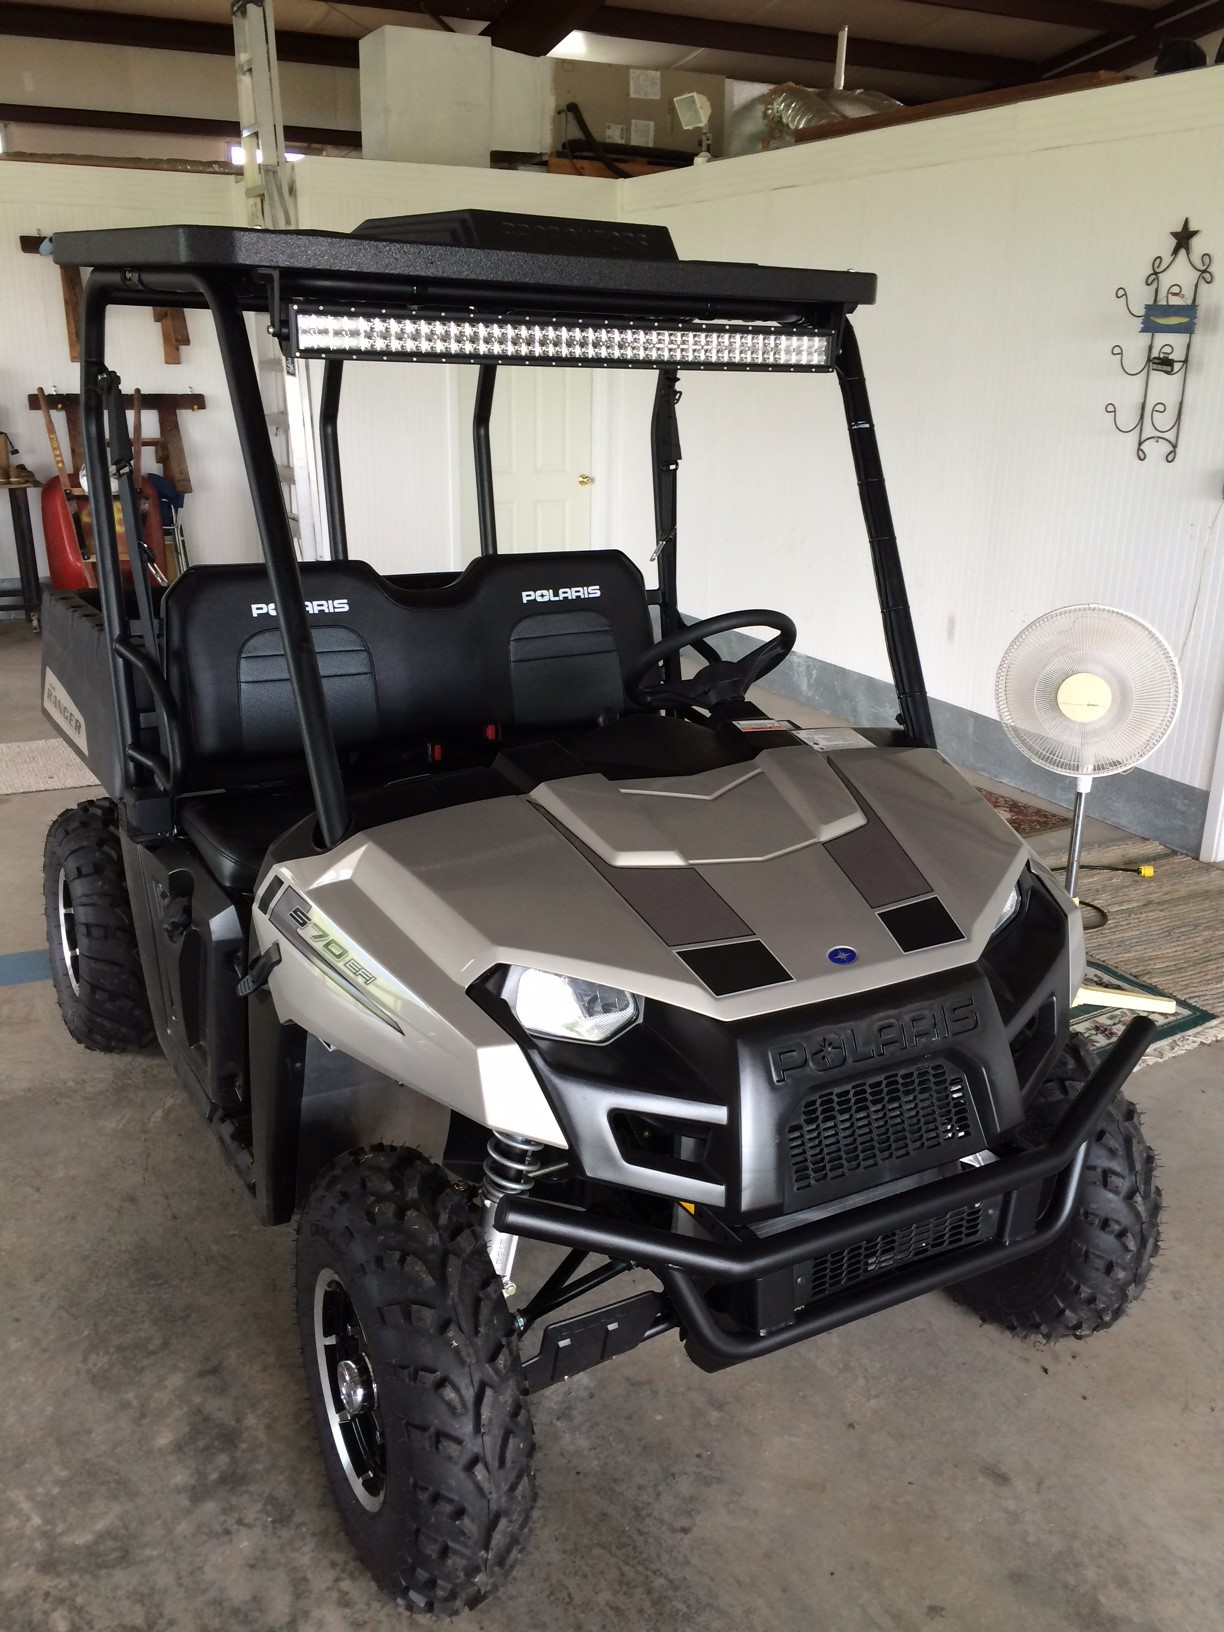 Mounting Led Bar On Probox Roof Ranger Crew Diesel Page 2